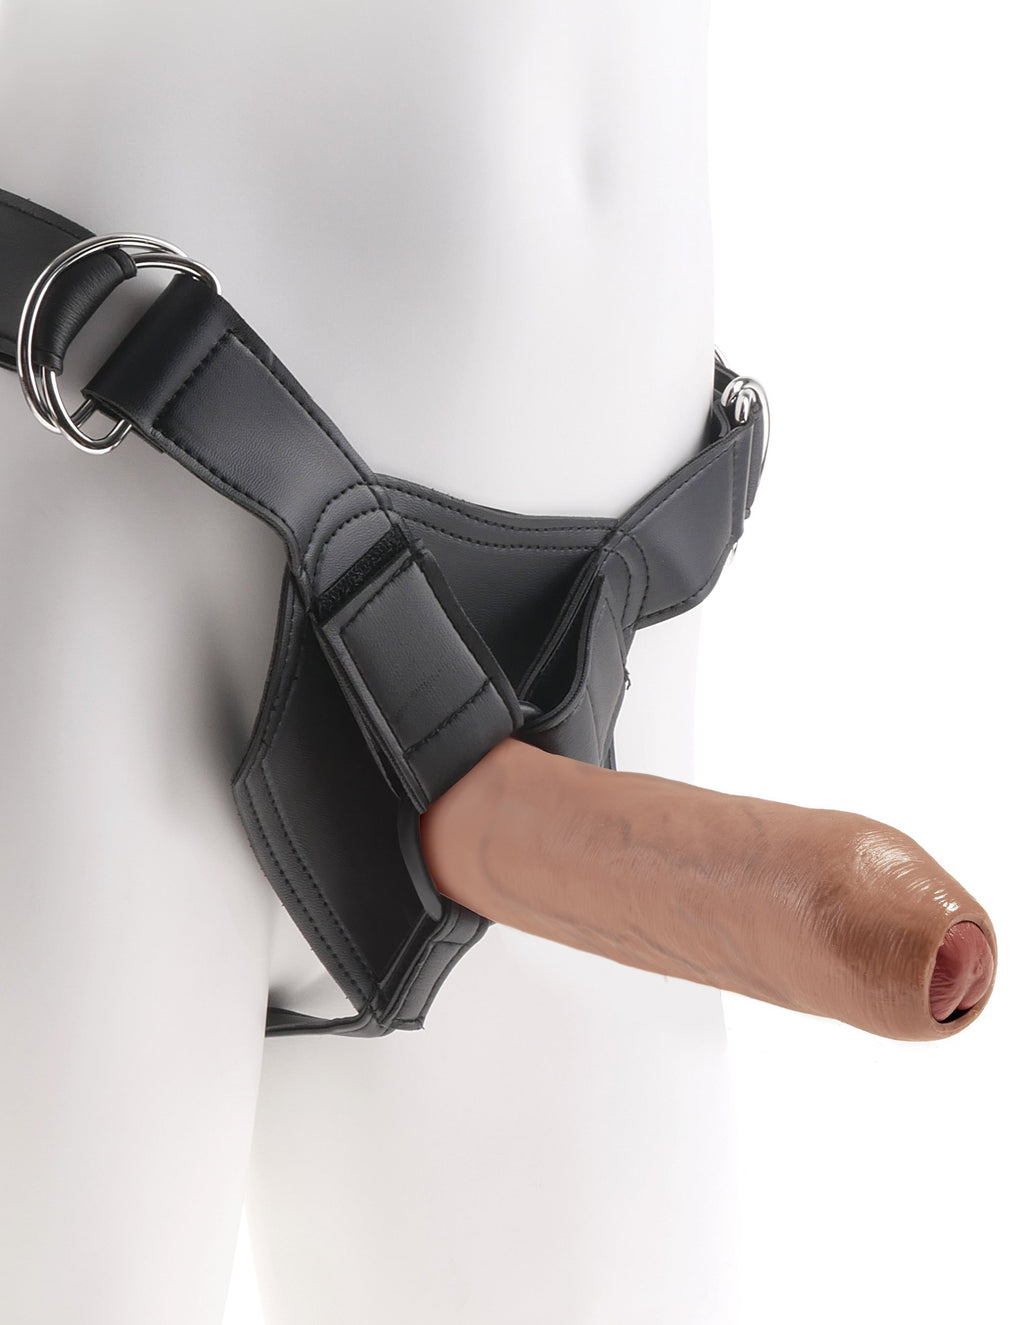 King Cock Strap-On Harness w/ 7 Inch Tan Uncut Cock | Dildos, Vibrator, Realistic Dildos, Sex Toys For Women, Sex Toys, Adult Toys | My Sex Shop